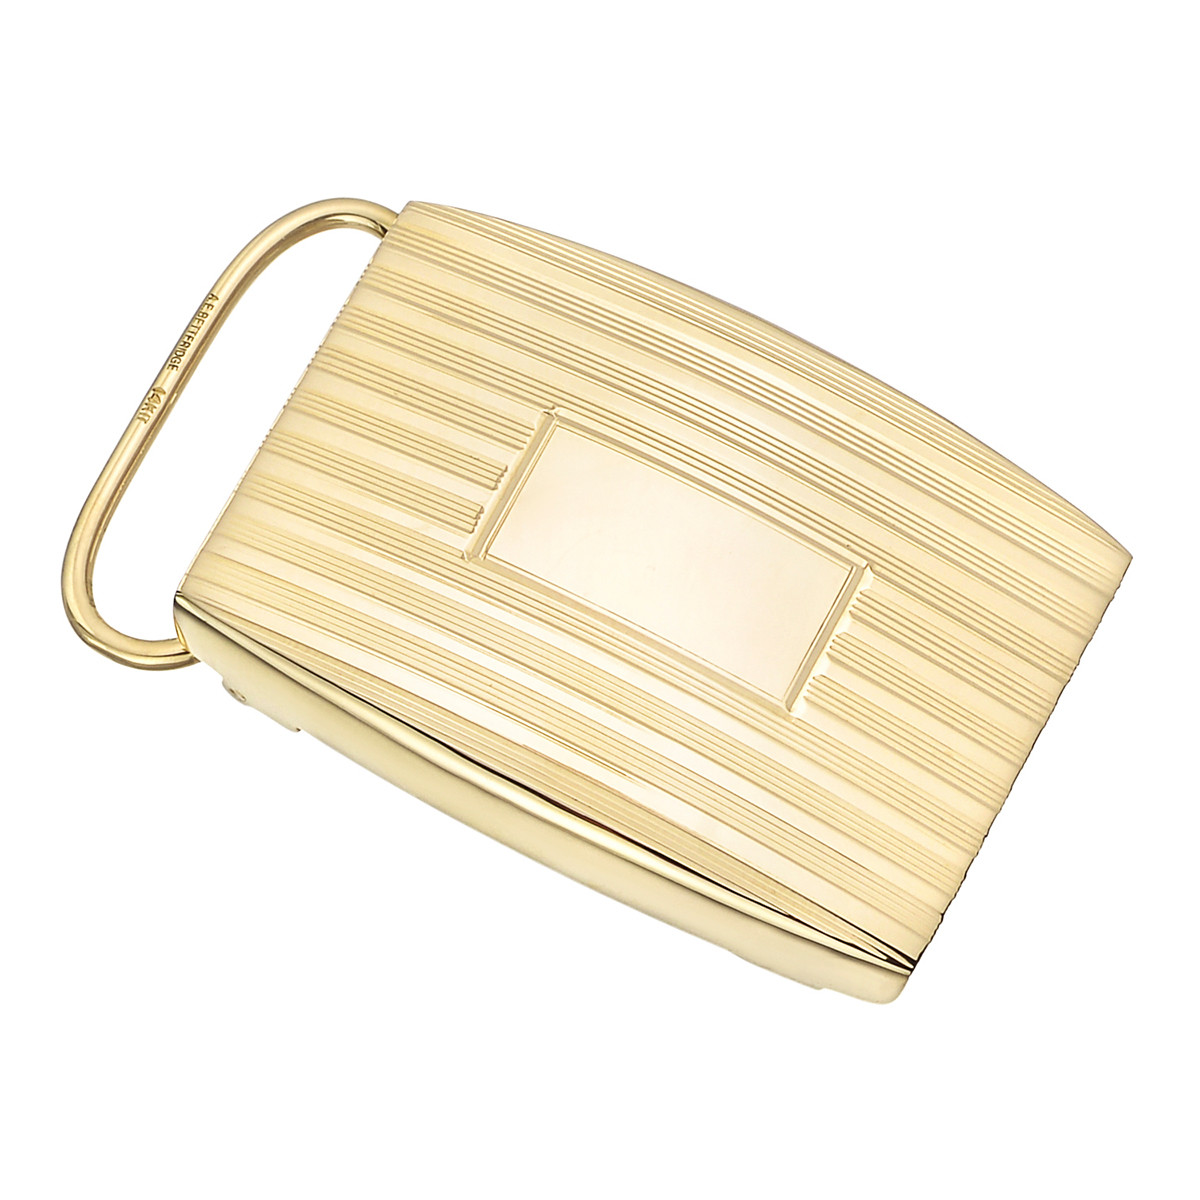 14k Yellow Gold Engine-Turned Belt Buckle